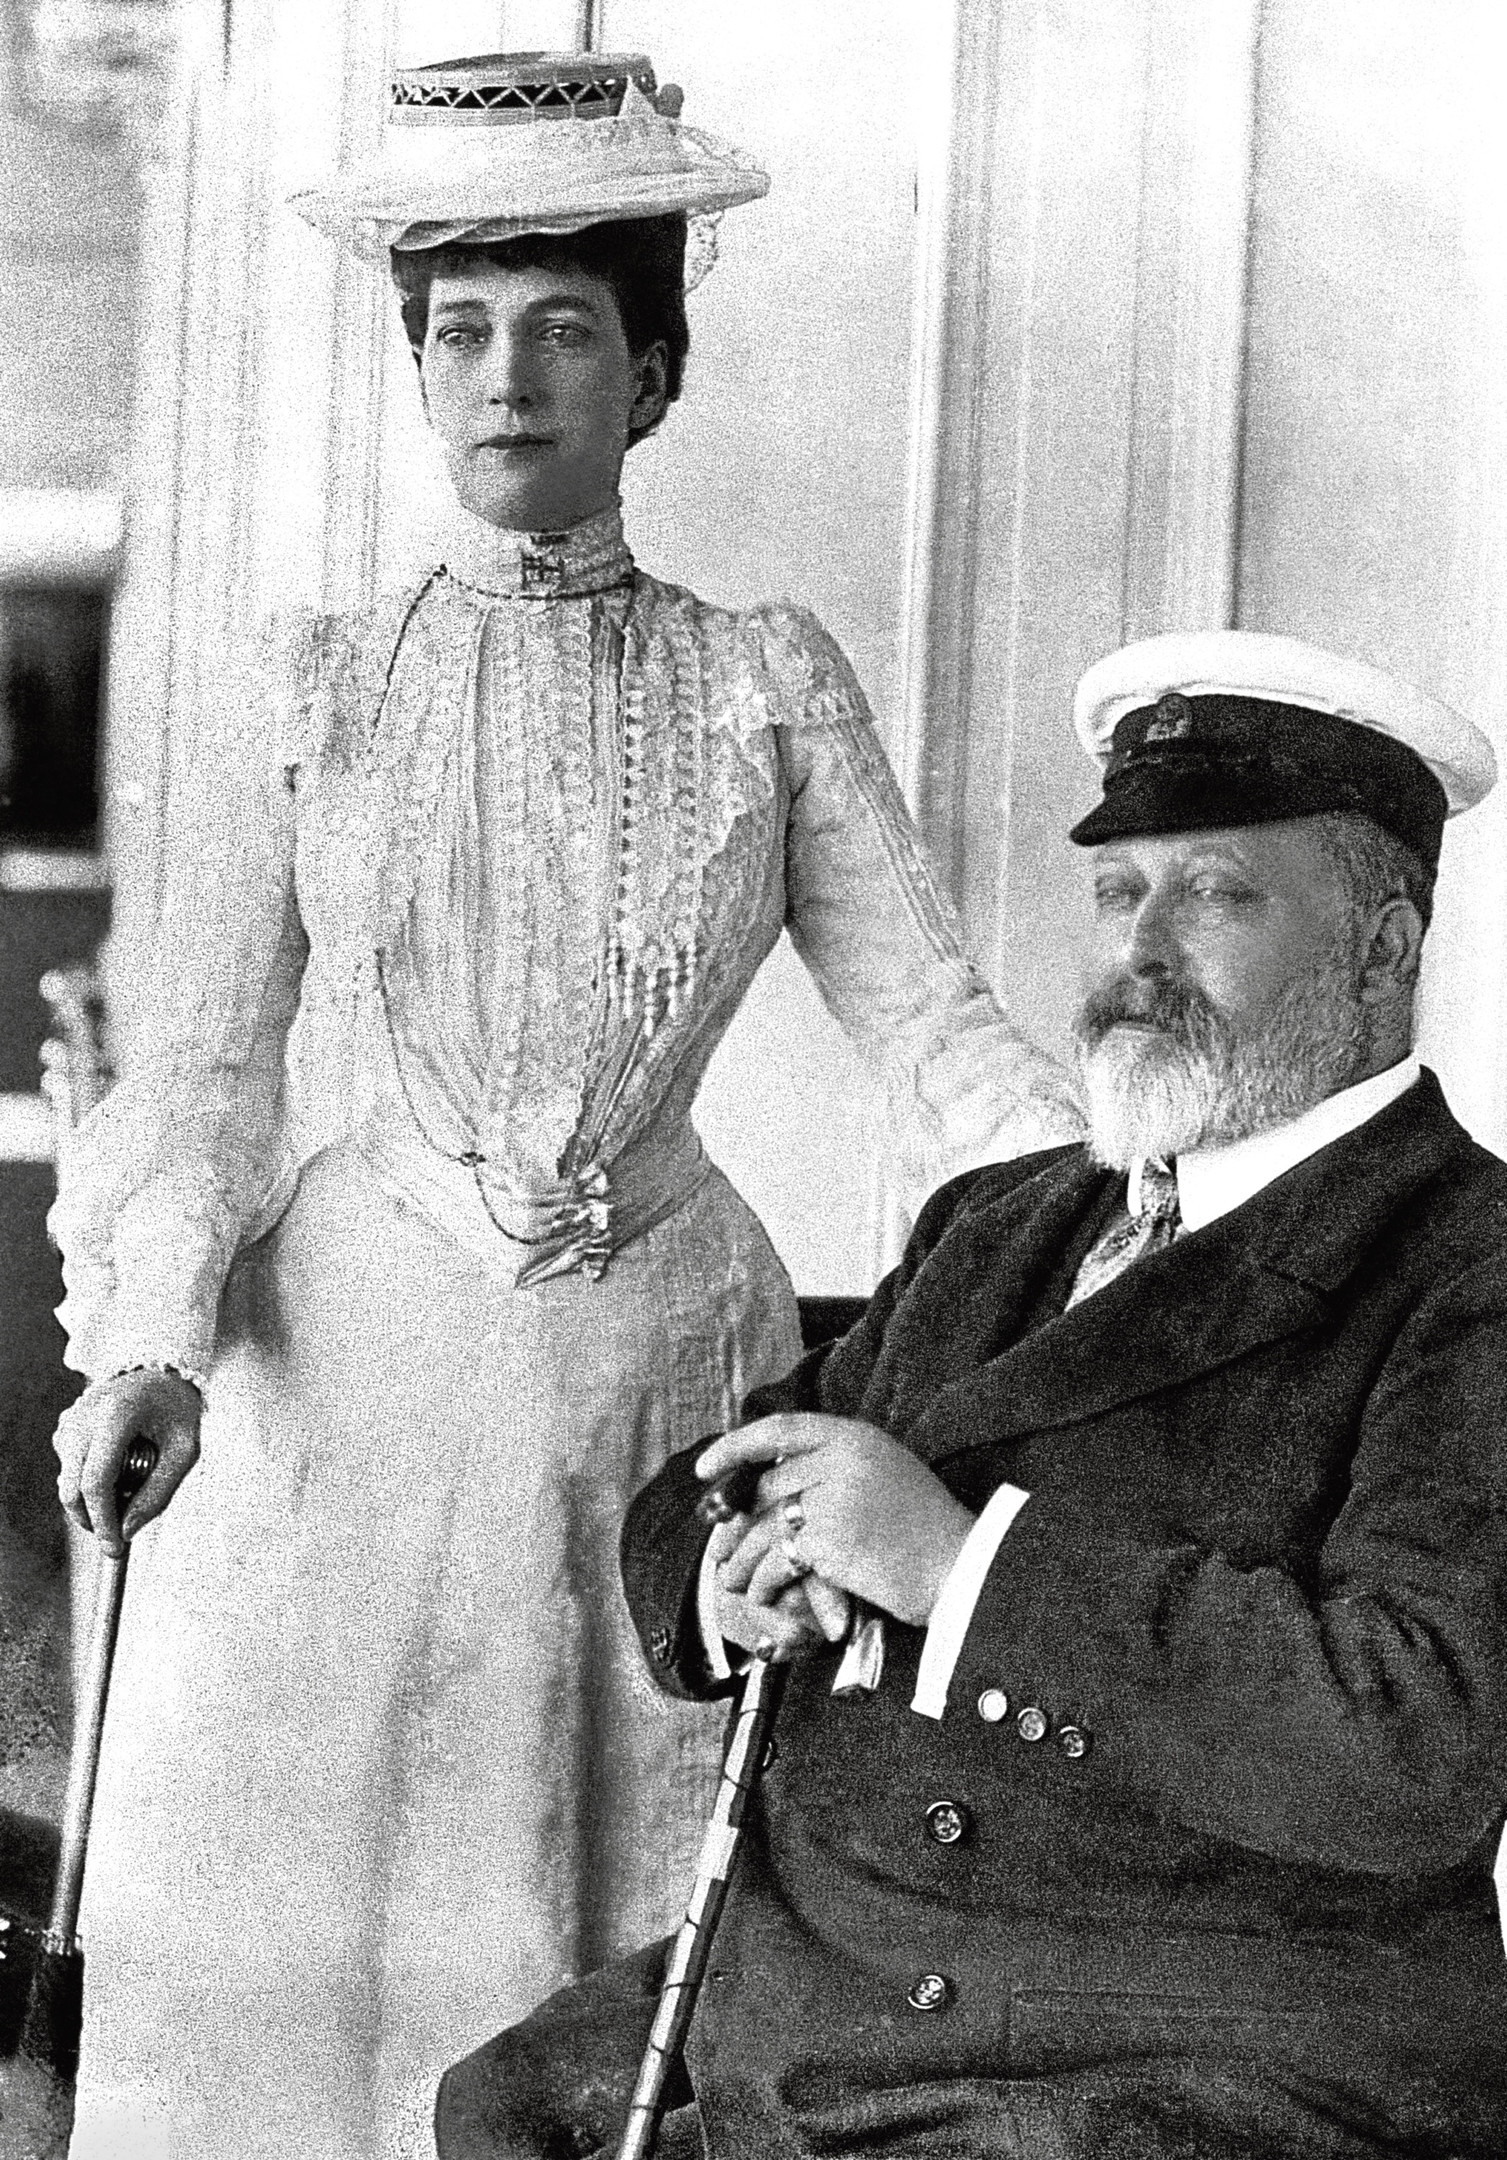 King Edward VII and Queen Alexandra at Cowes, Isle of Wight.